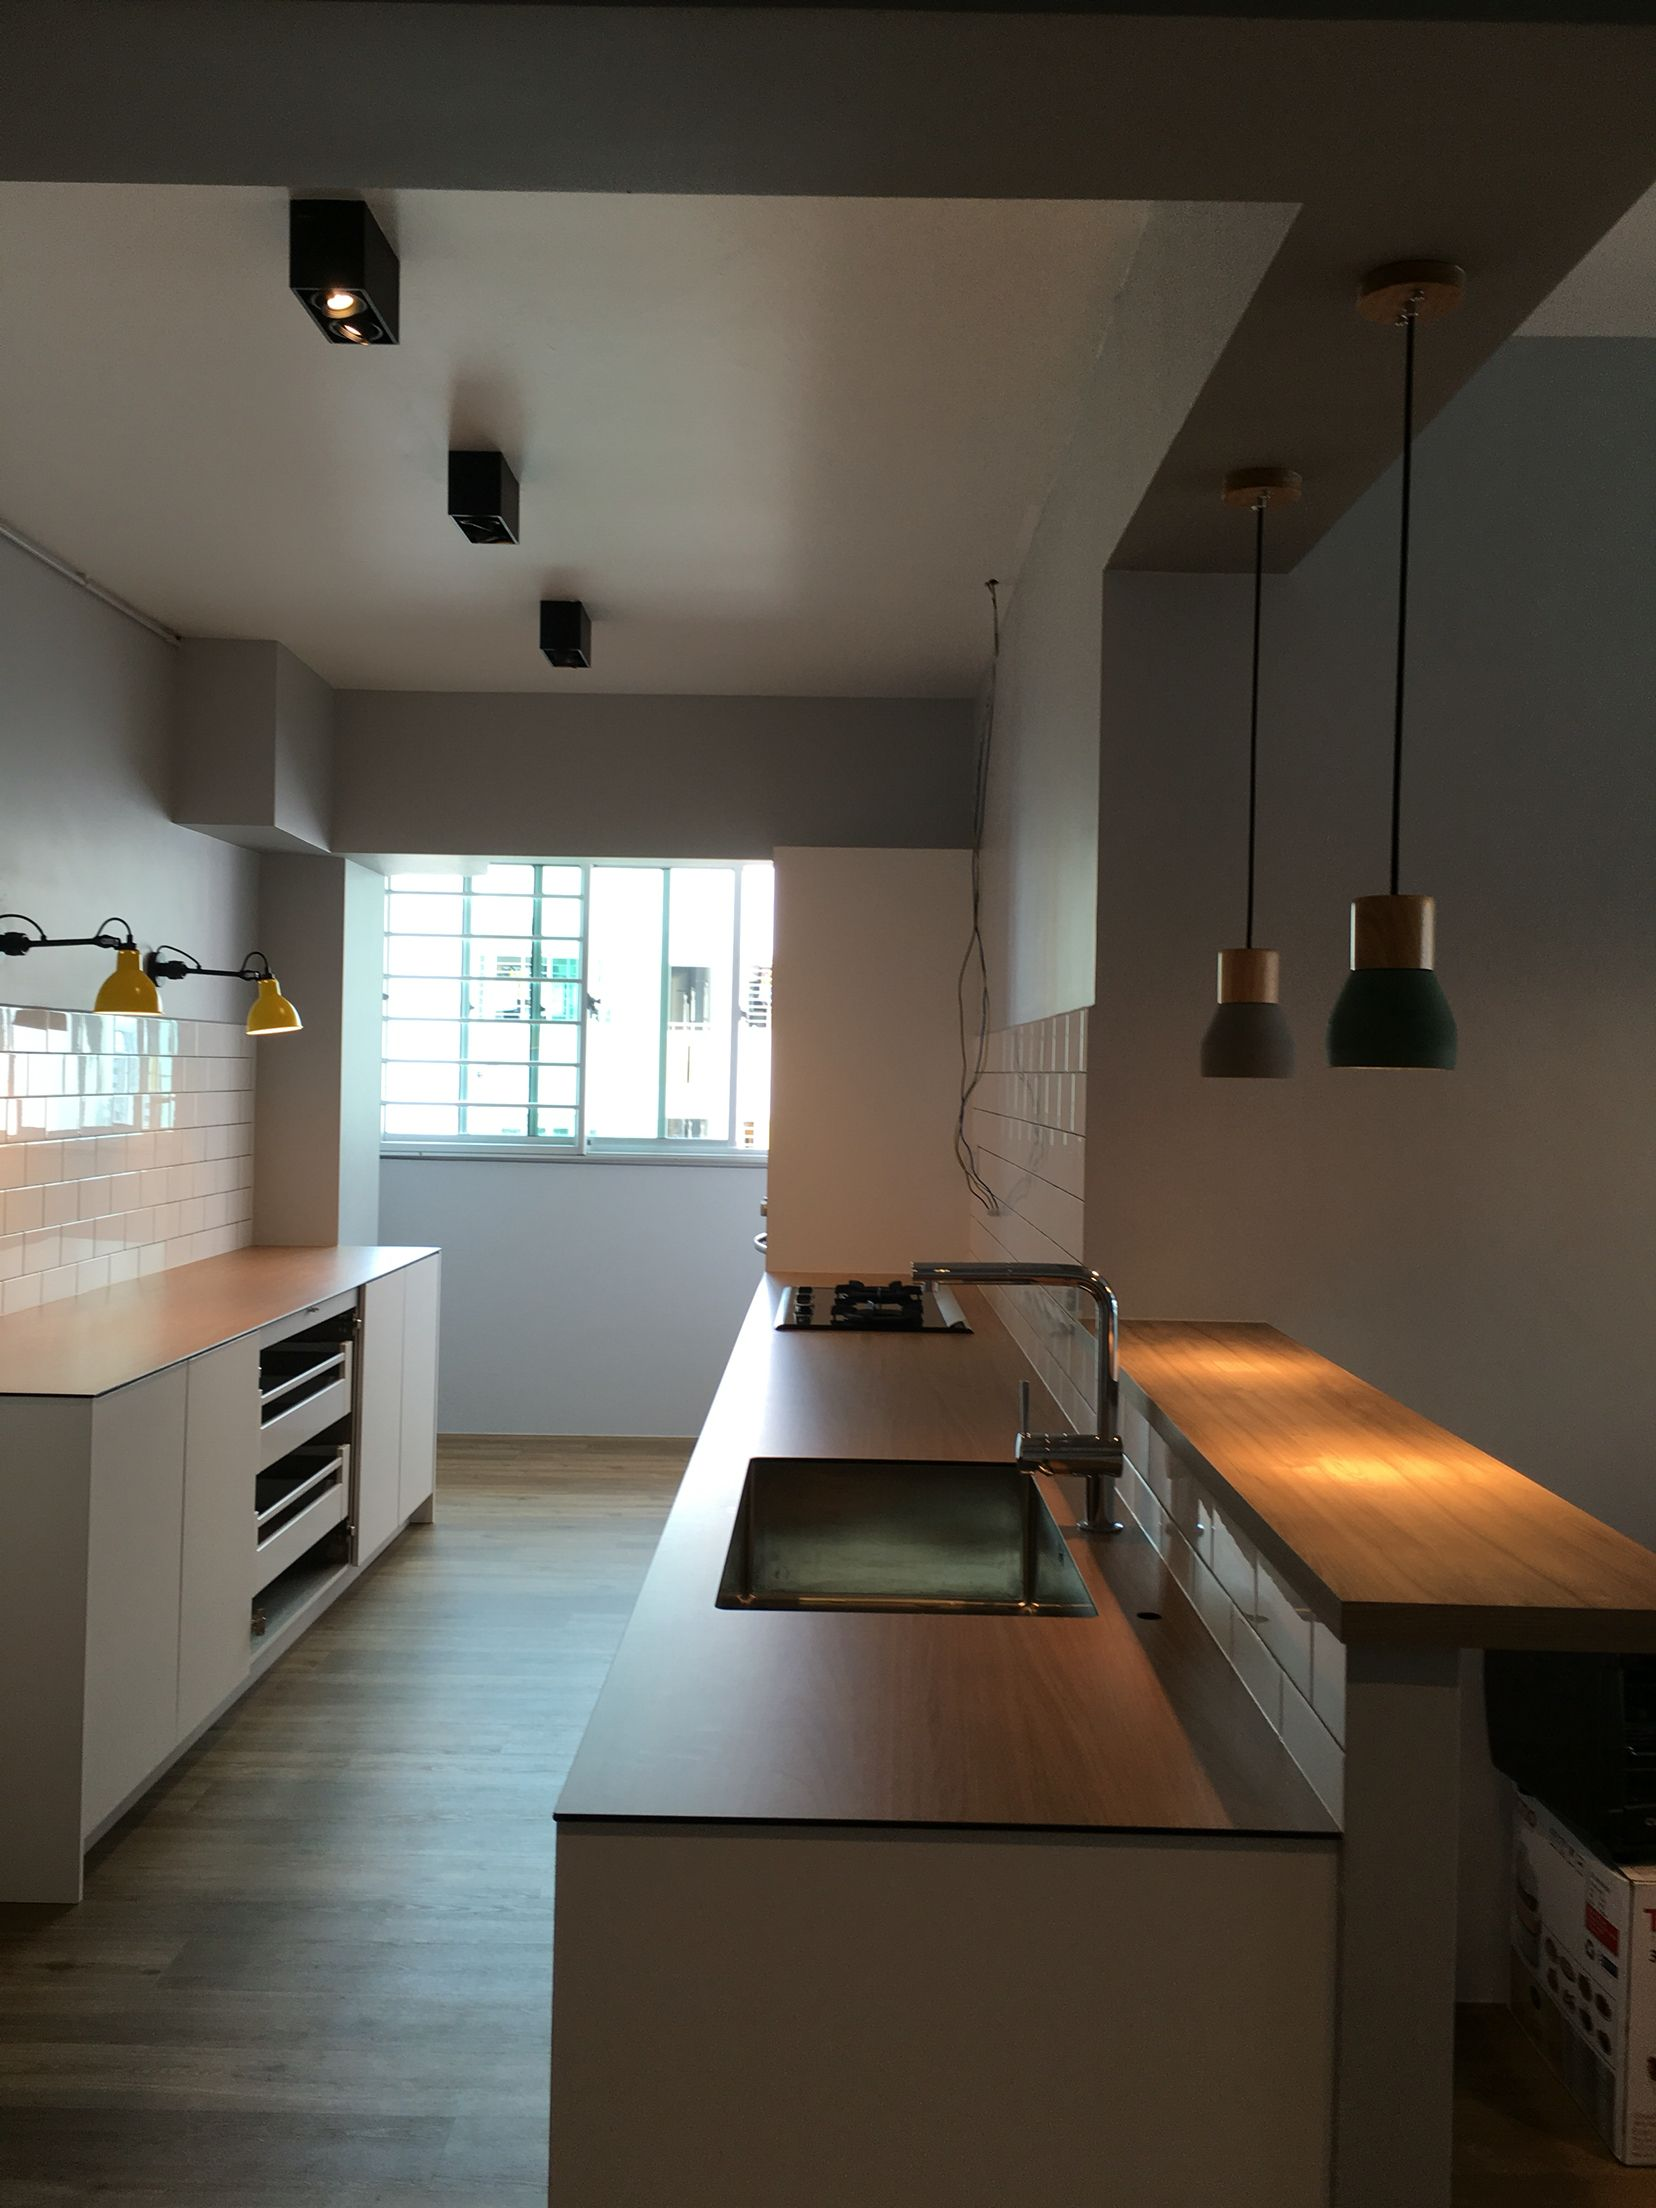 Hdb Home Design: Home Kitchens, House Design, Kitchen Decor